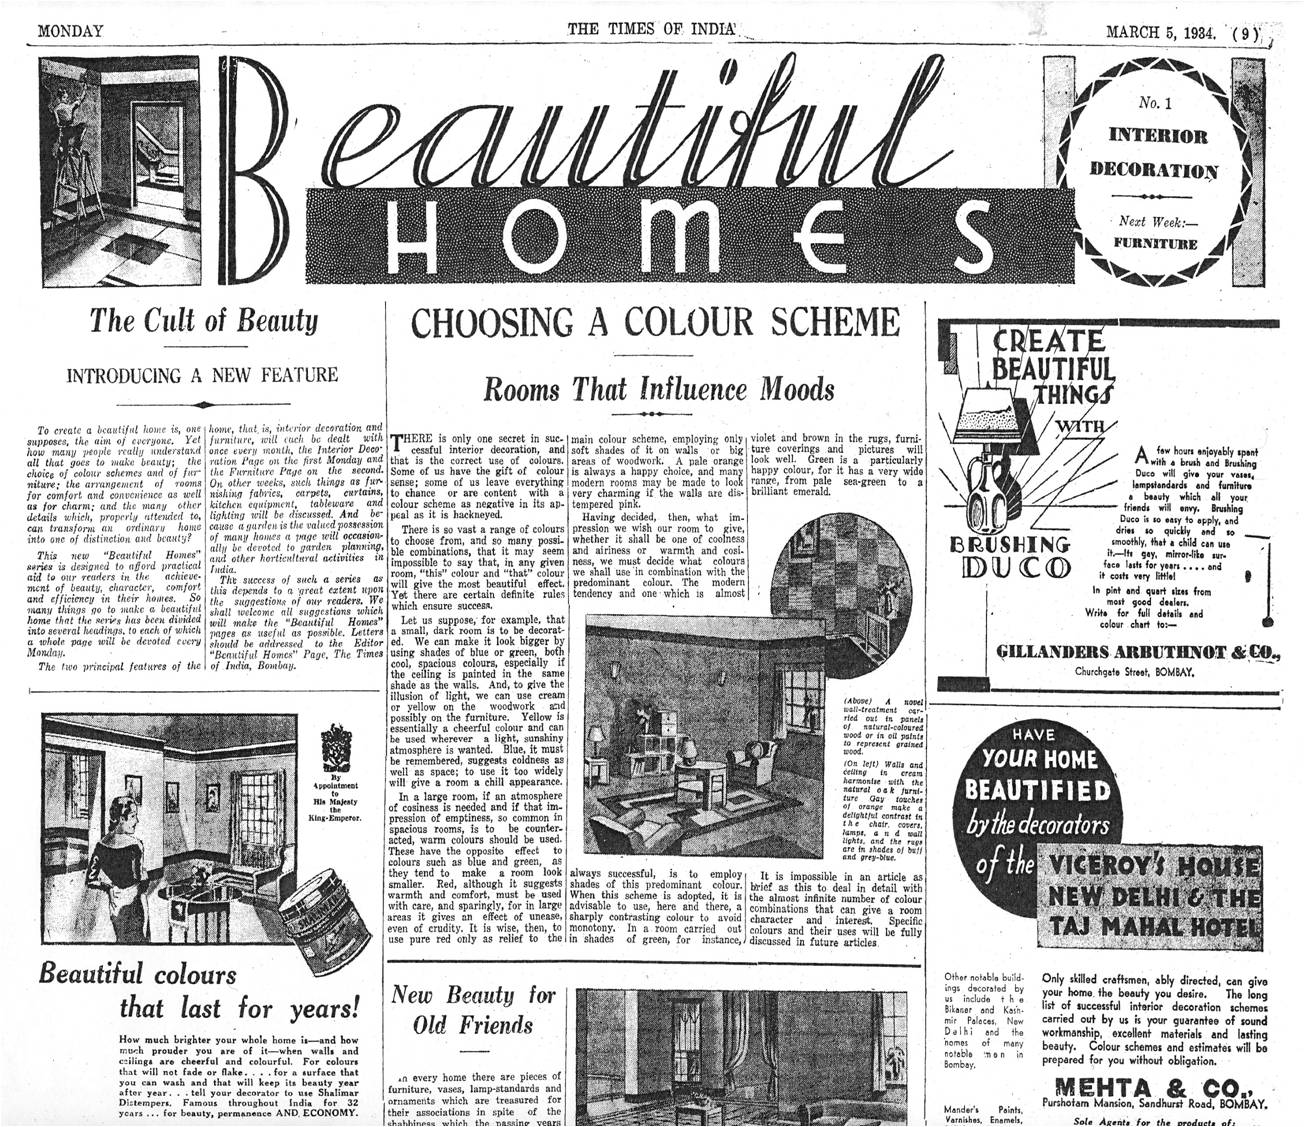 Home Decor Mumbai Vintage Ads How Mumbai Home Decor Was Transformed By A Global